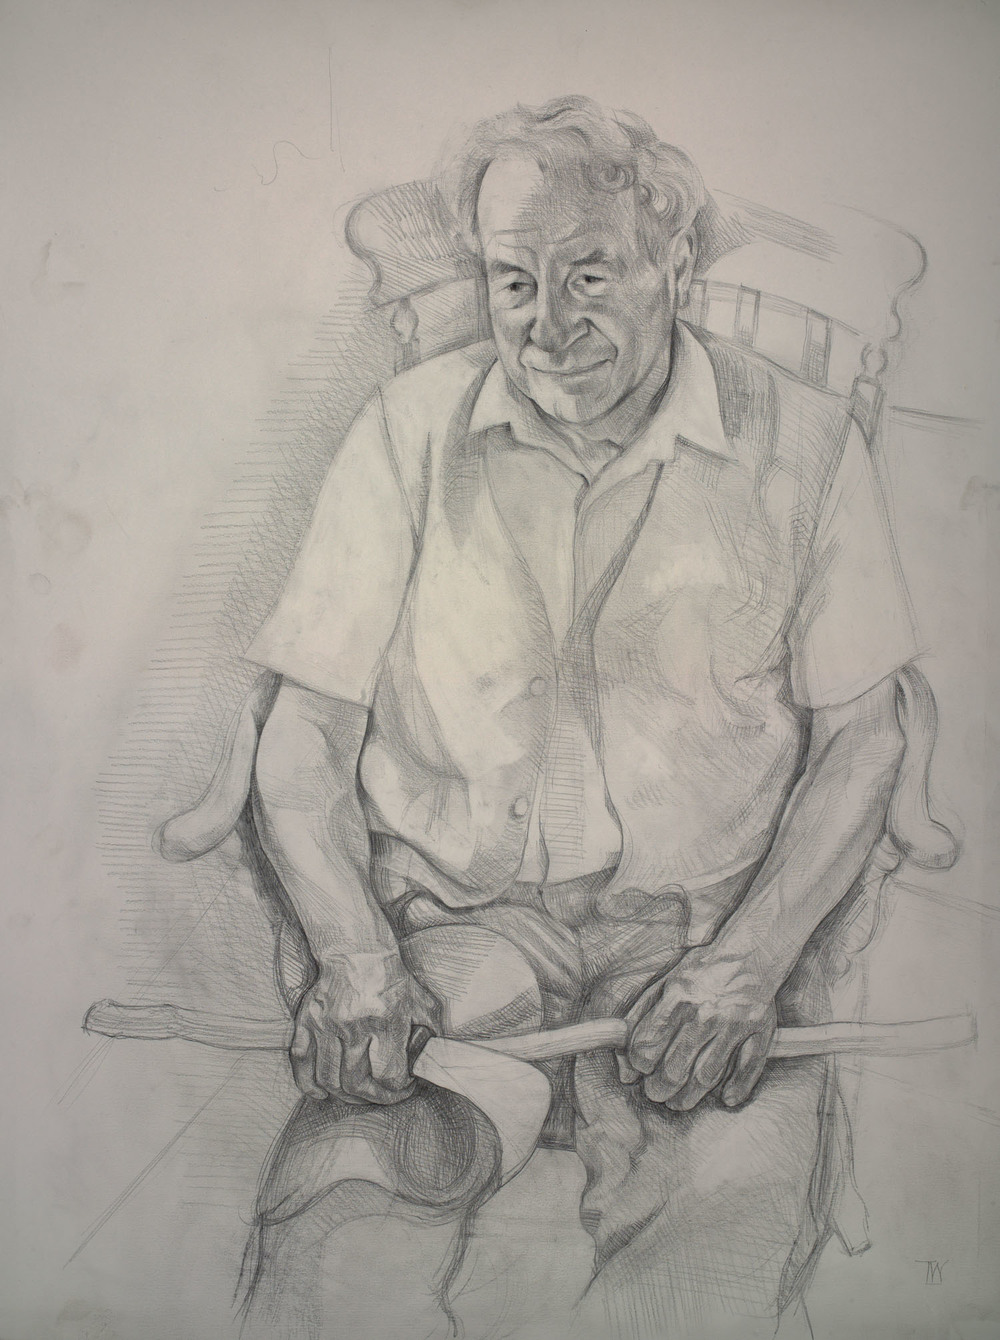 "'Alan Brown - Hurdle maker and local historian, Wool, Dorset.' 74x57cm (29""x22"") pencil on paper. Private collection."